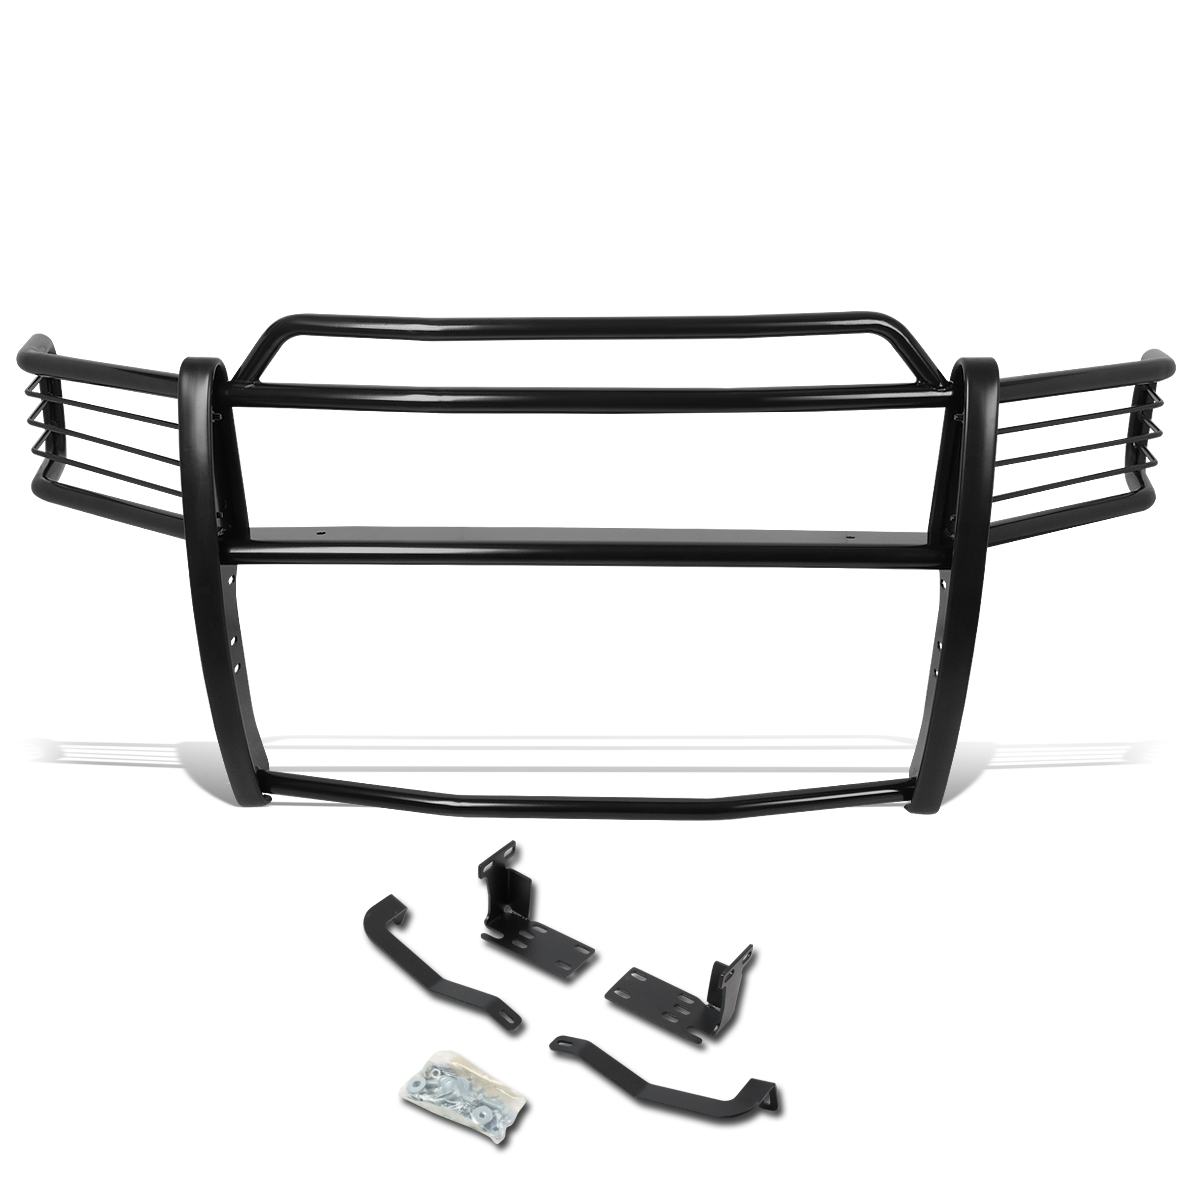 For 02-05 Dodge Ram 1500/2500/3500 Front Bumper Protector...